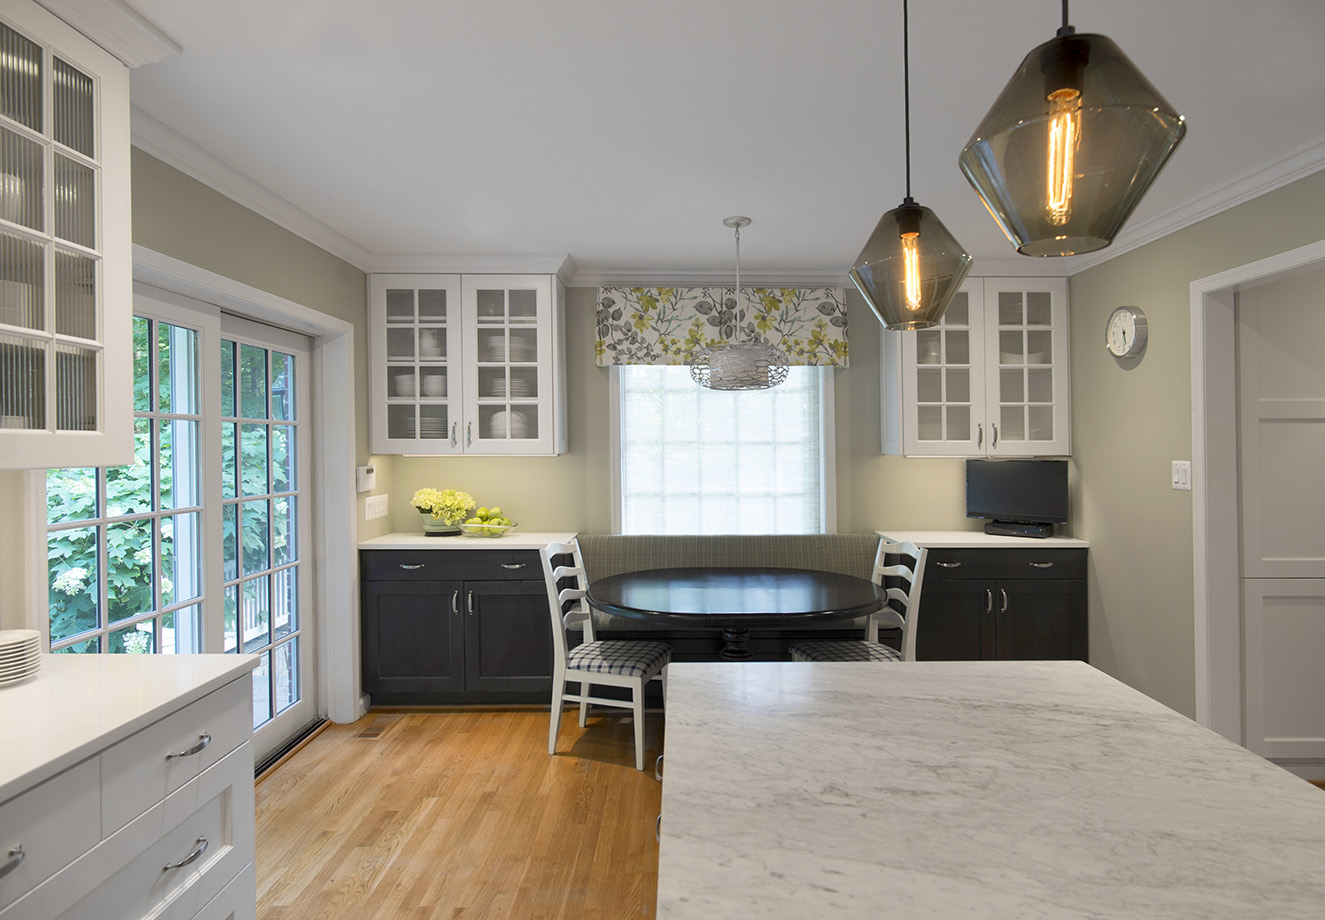 Breakfast dining area blends into the kitchen